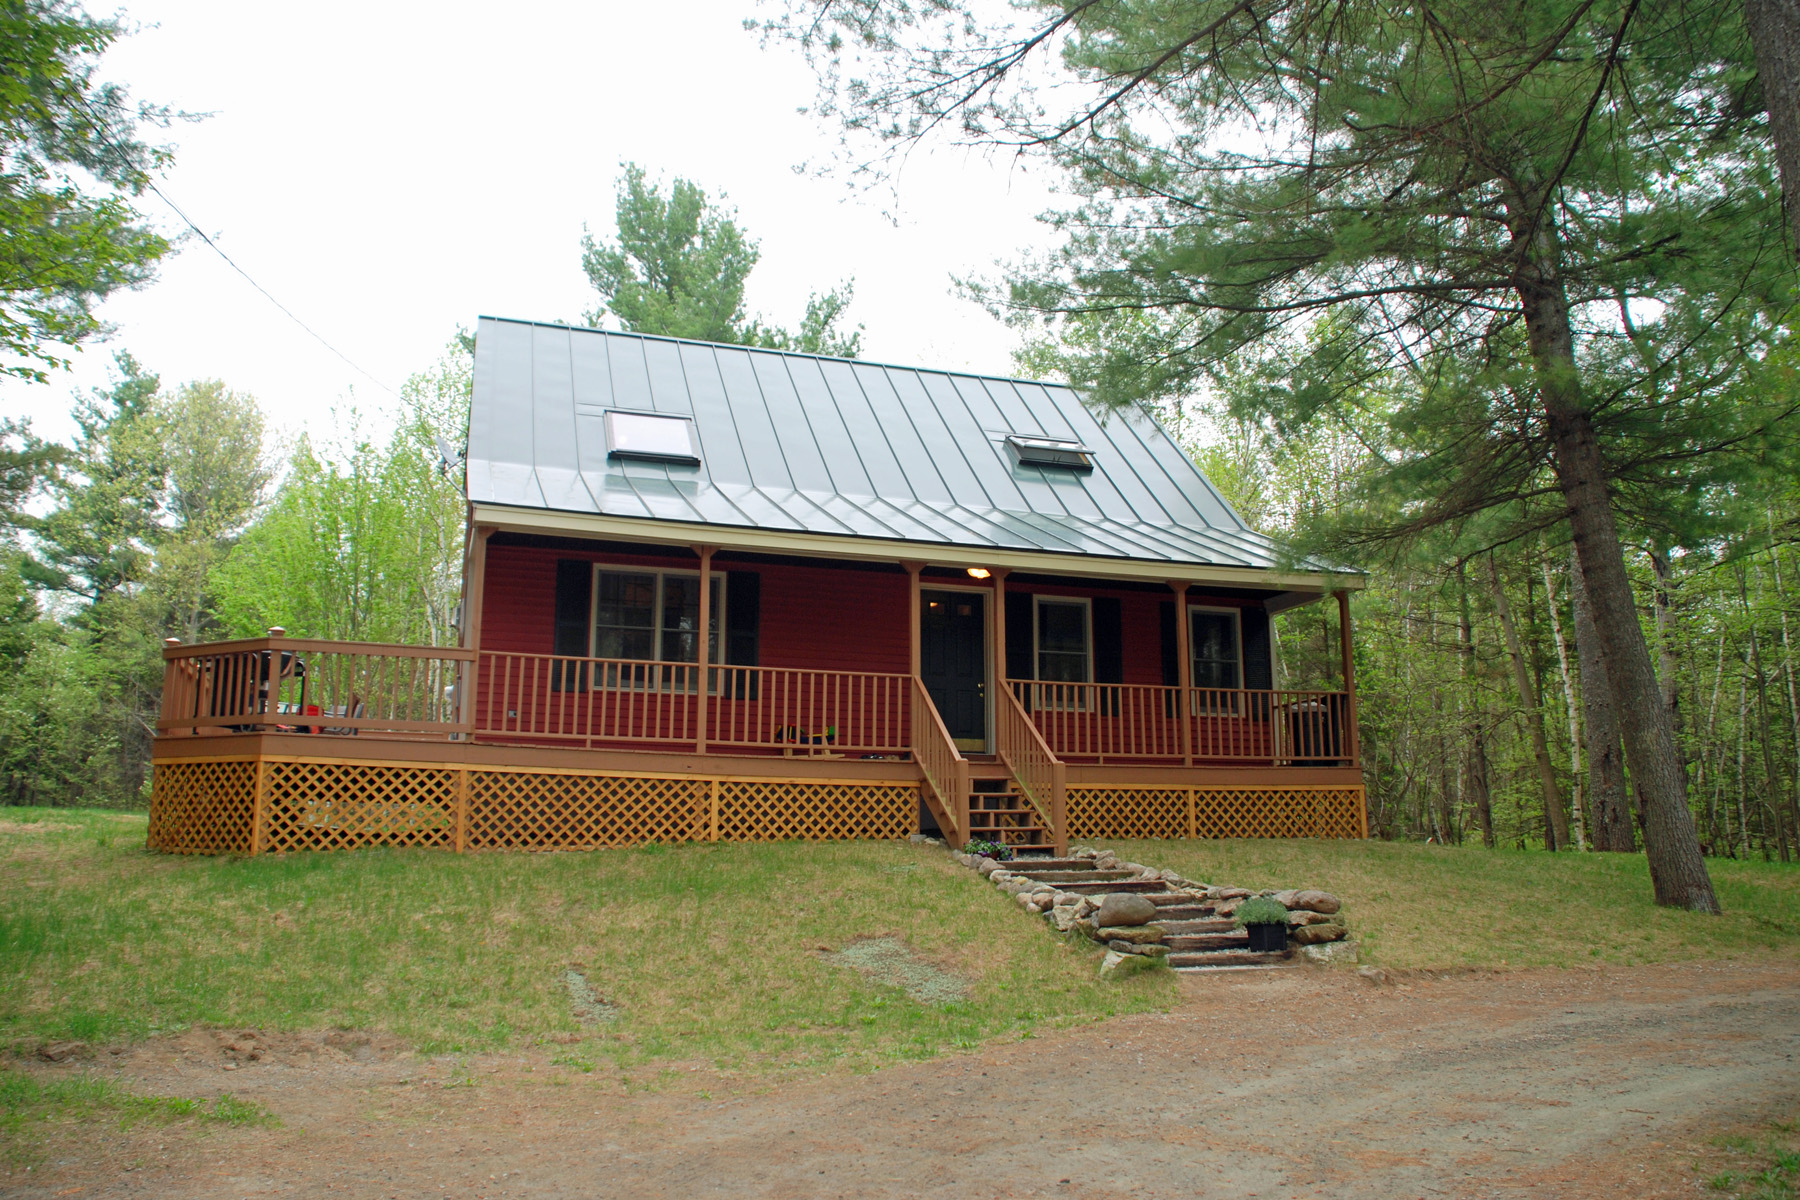 Single Family Home for Sale at 40 Red House Road, Newbury 40 Red House Rd Newbury, New Hampshire 03255 United States